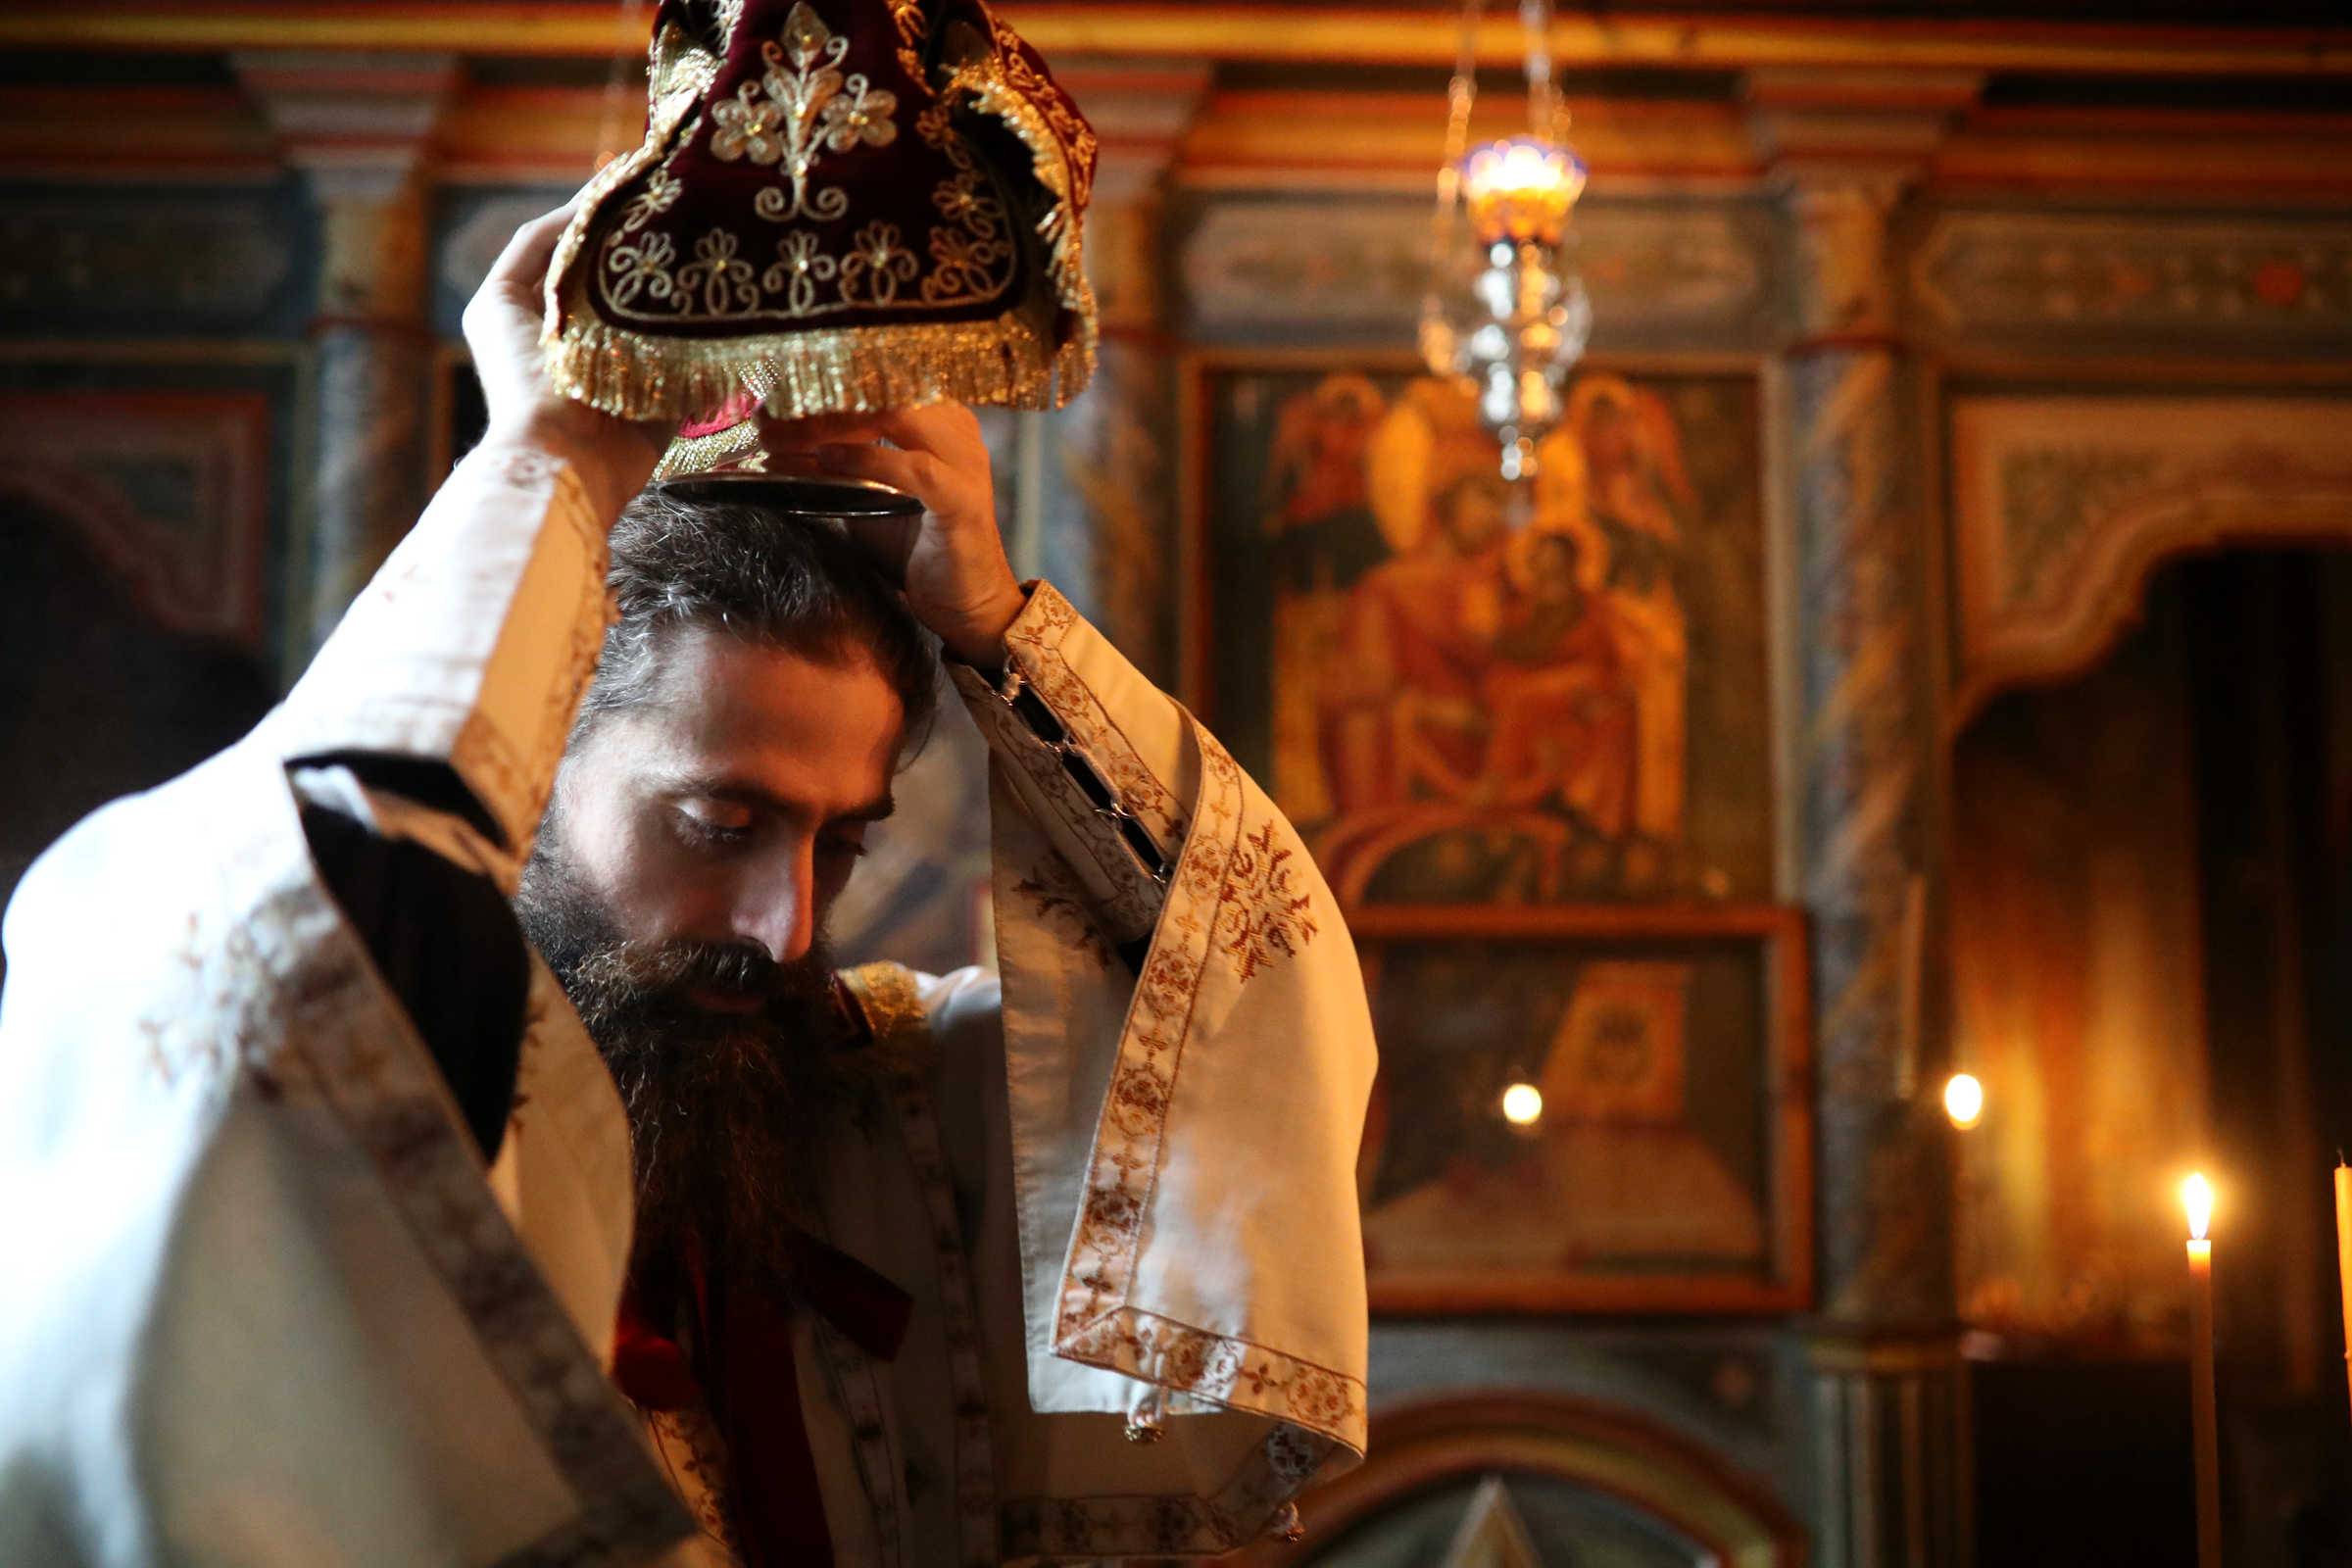 The Holy Communion does not make people sick - photo journal from the Chapel of Holy Unmercenary Healers